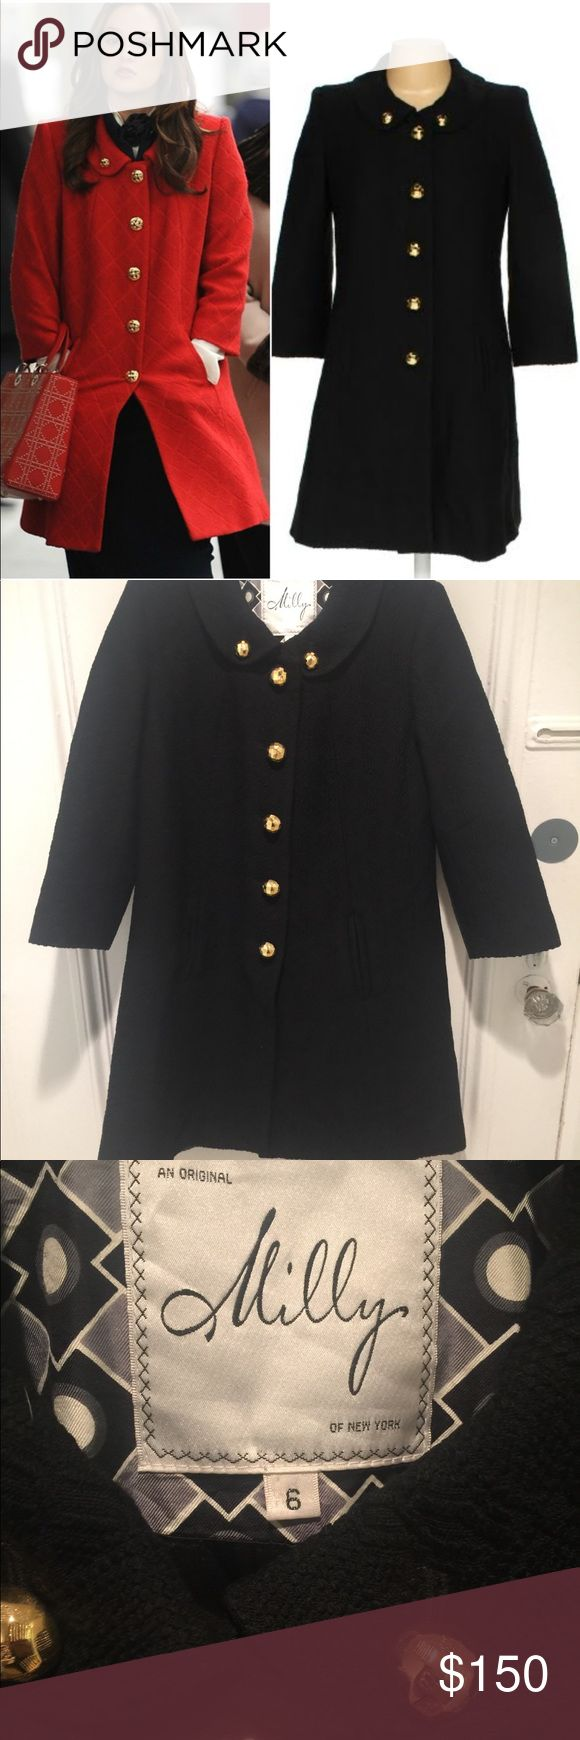 Attractive Milly Black Pea Coat 6 Blair Waldorf Gossip Girl